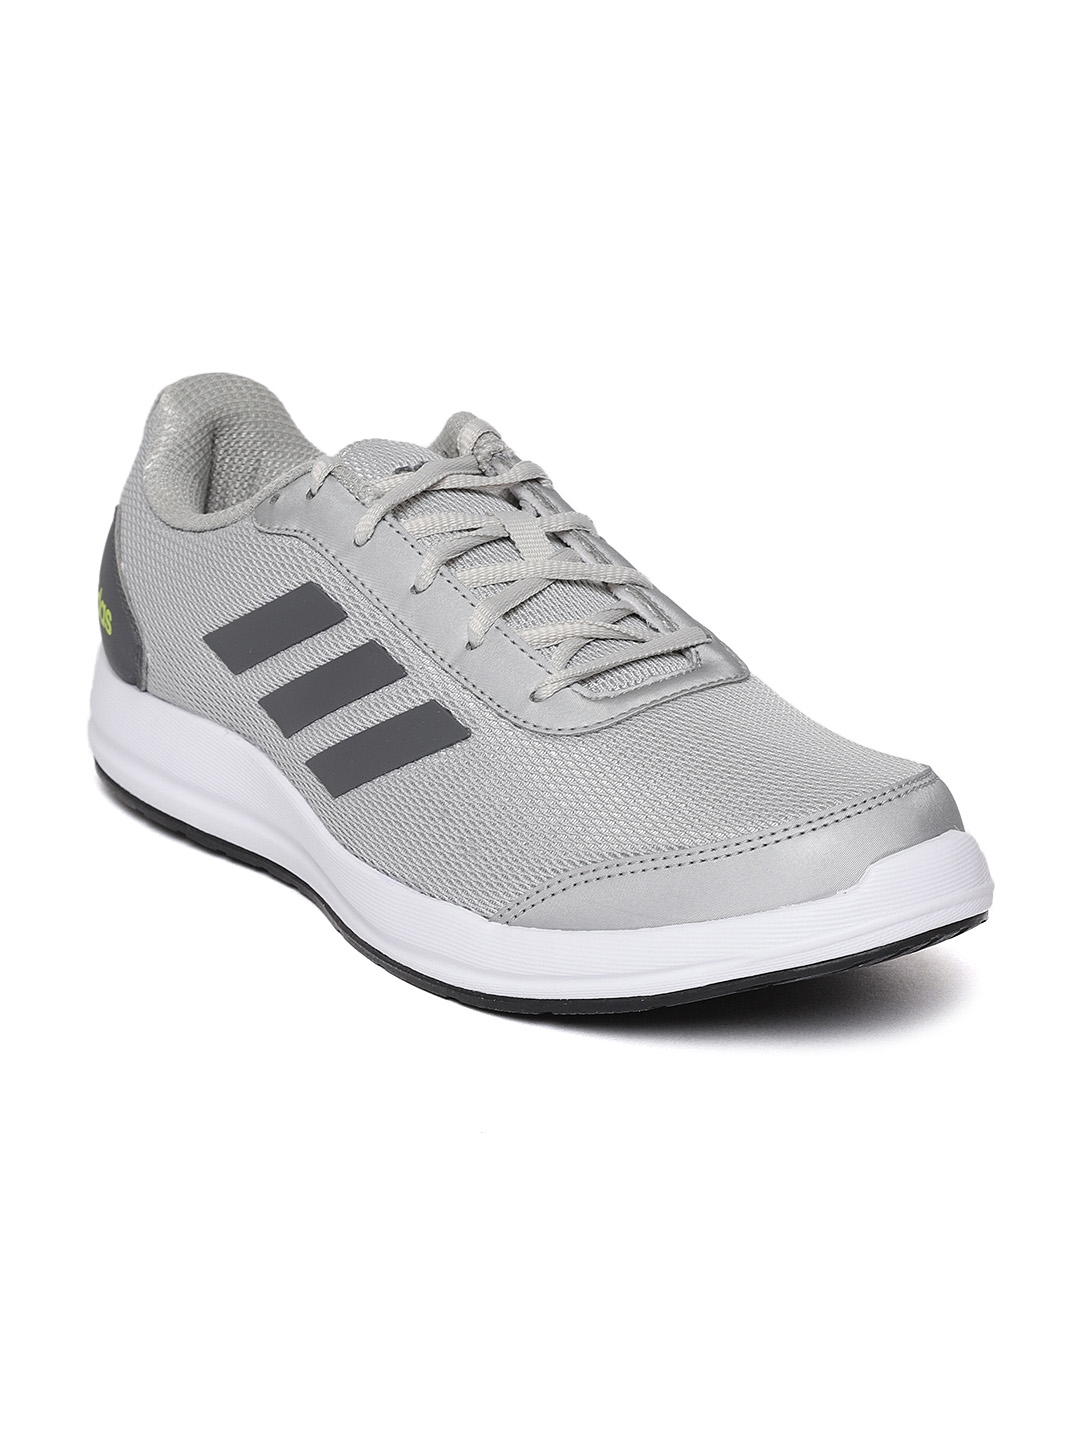 71588ad79a8c Buy ADIDAS Men Grey YKING 2.0 Running Shoes - Sports Shoes for Men ...